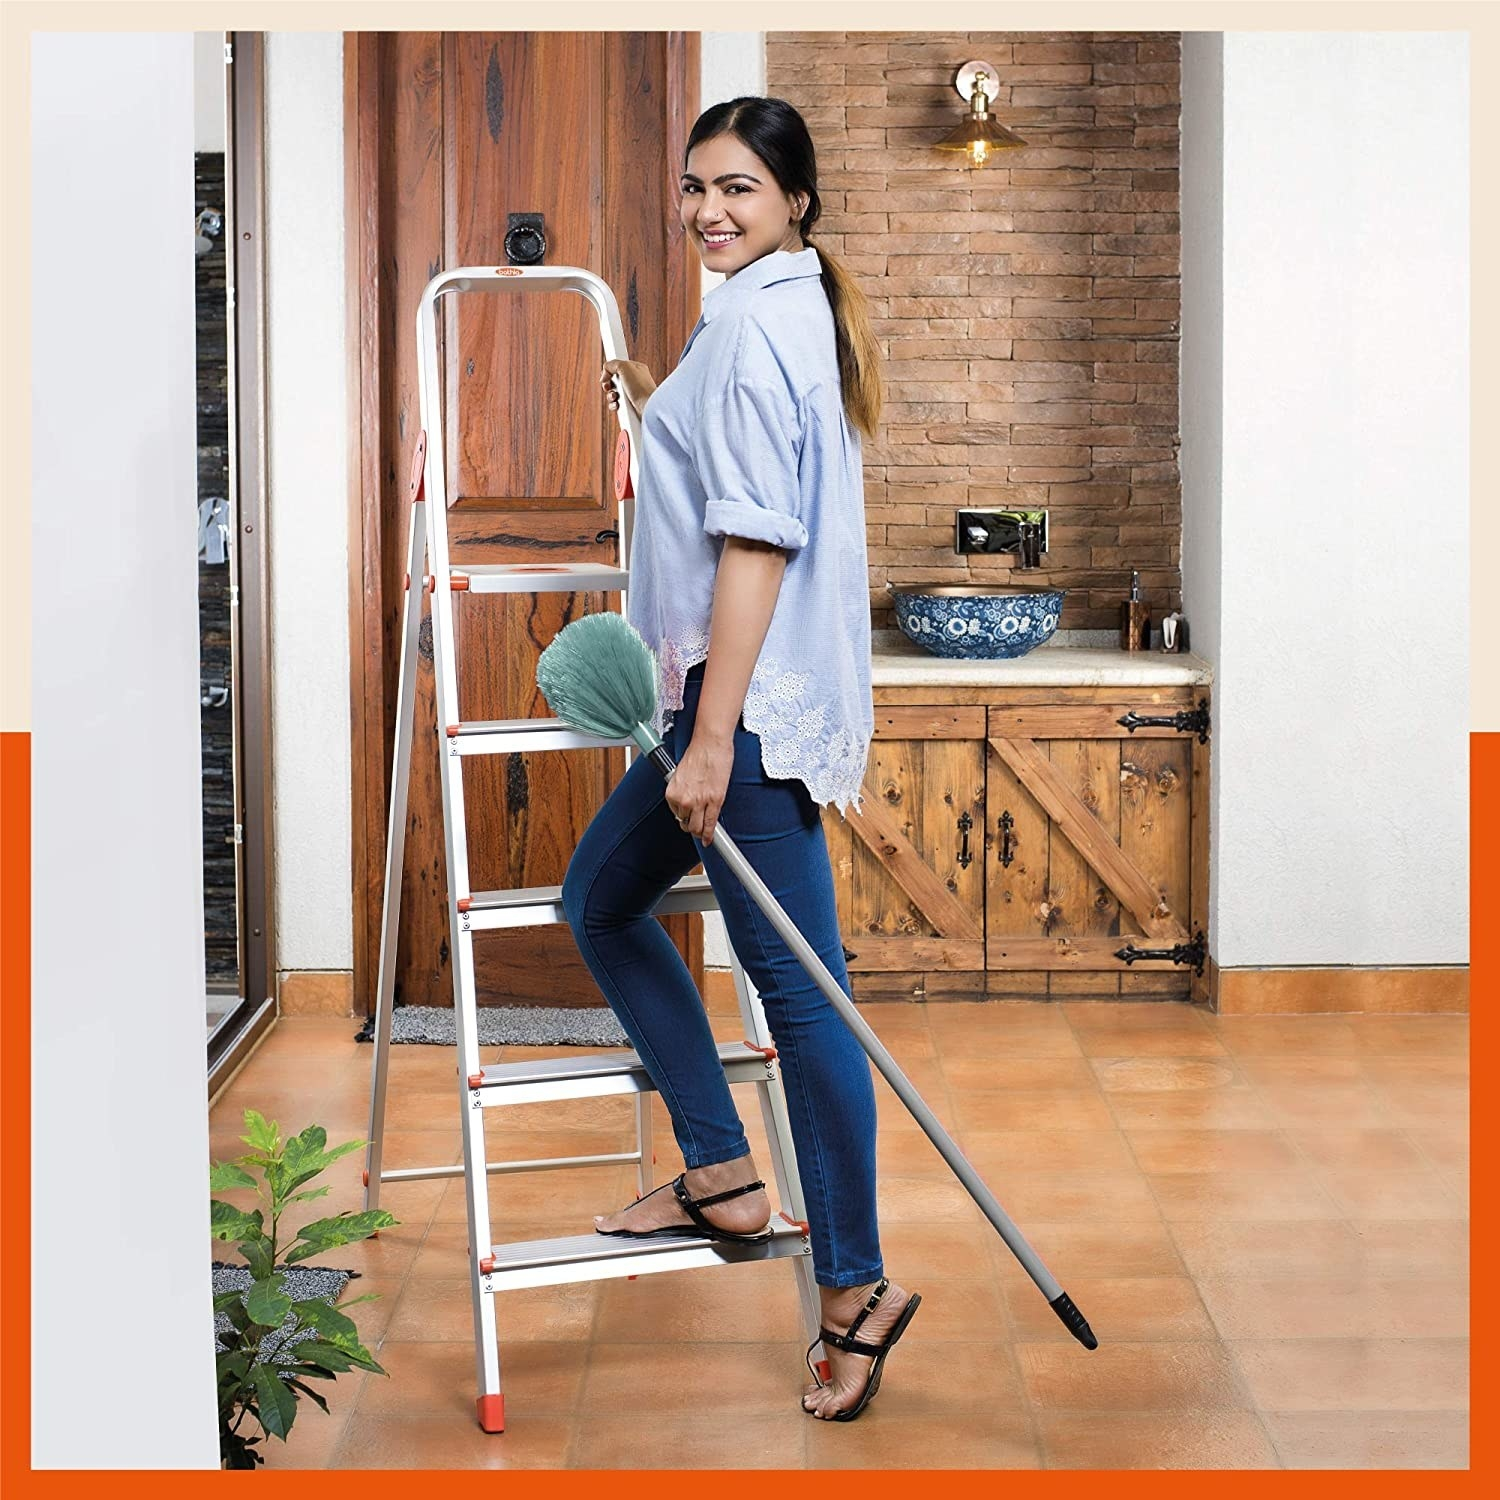 A foldable 5-step ladder